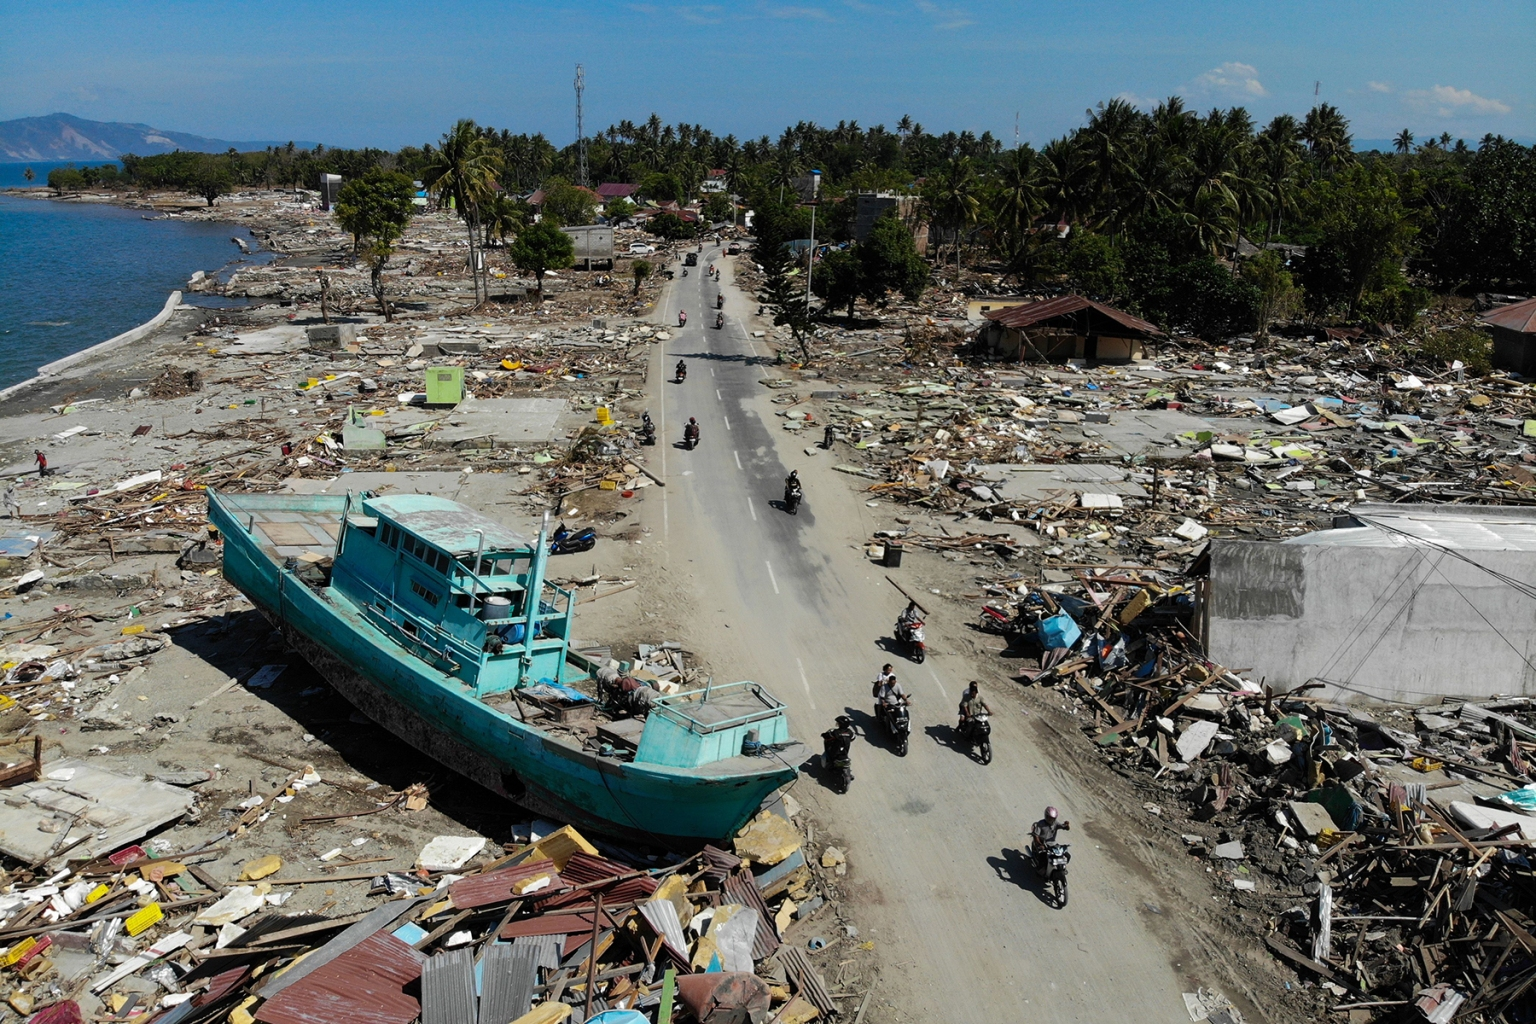 People drive past a washed-up boat and collapsed buildings in Palu, Indonesia, on Oct. 1 after an earthquake and tsunami hit the area on Sept. 28. (Jewel Samad/AFP/Getty Images)